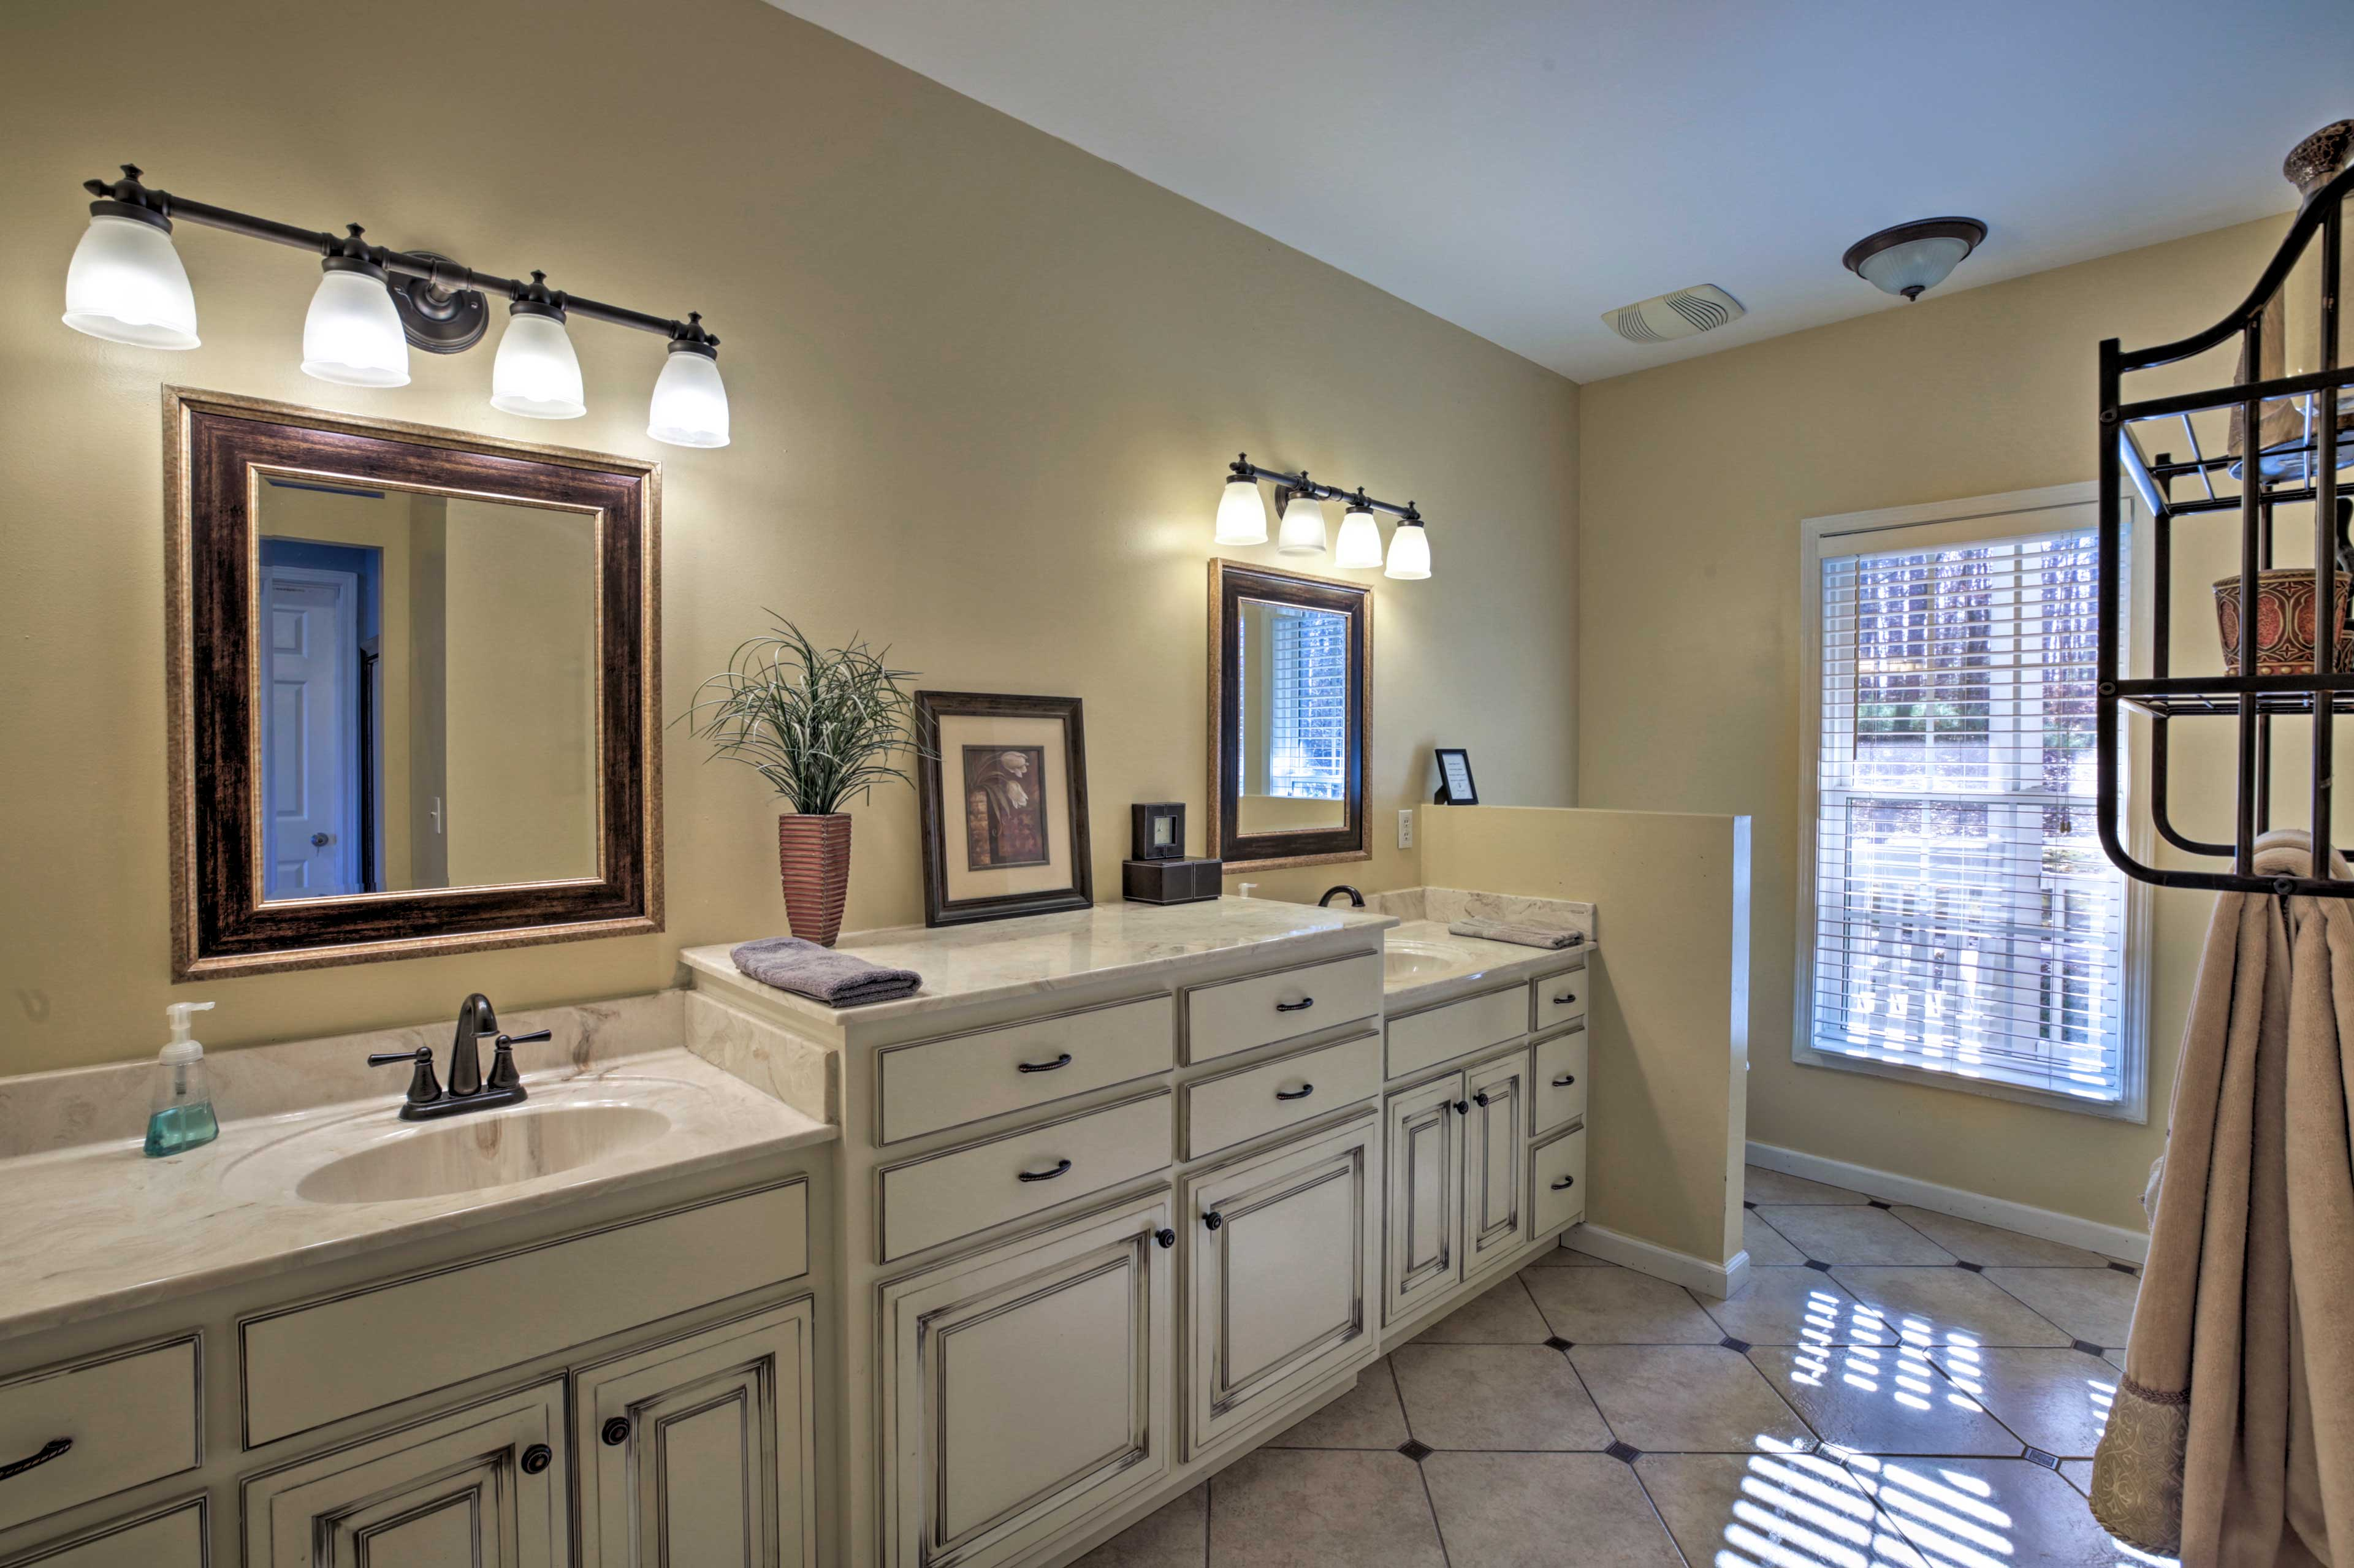 This pristine master bathroom features plenty of counter space.